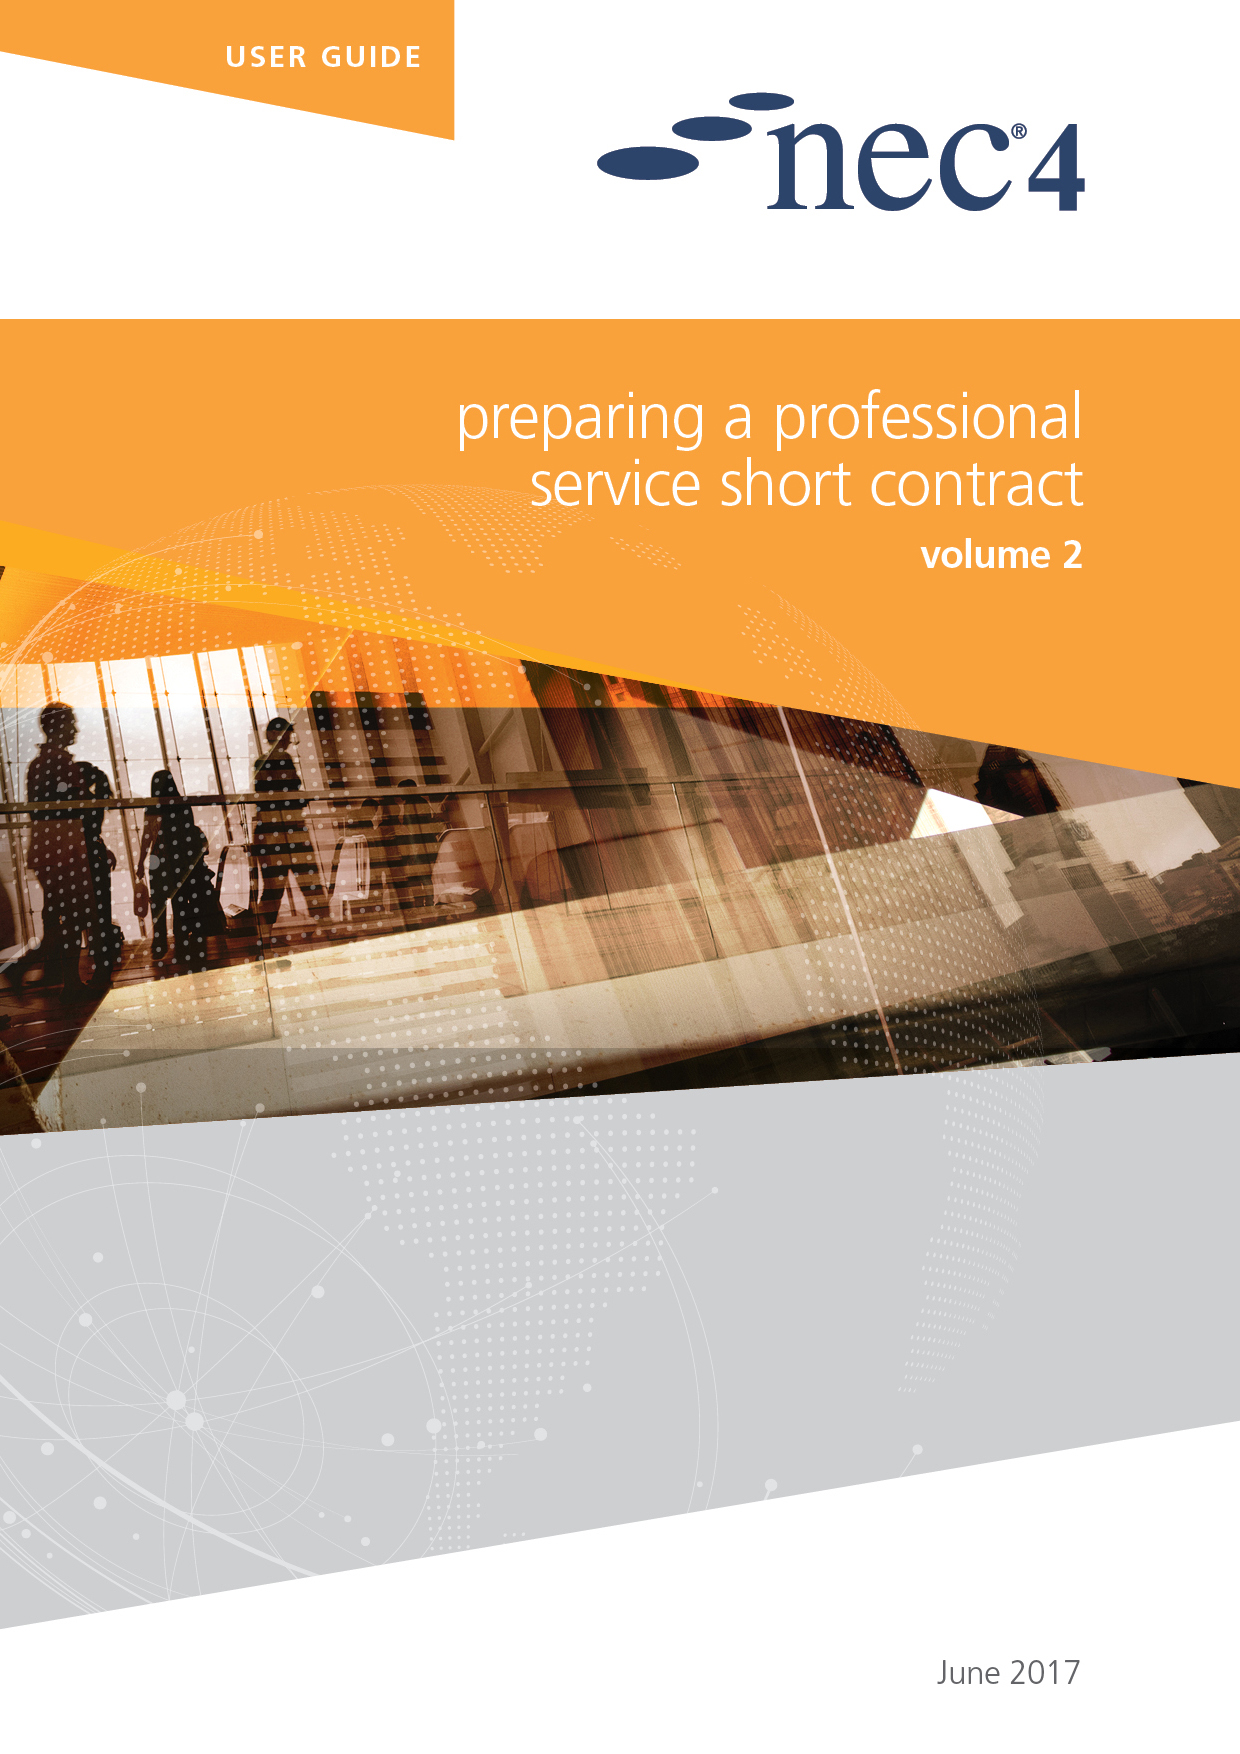 NEC4: Preparing a Professional Service Contract